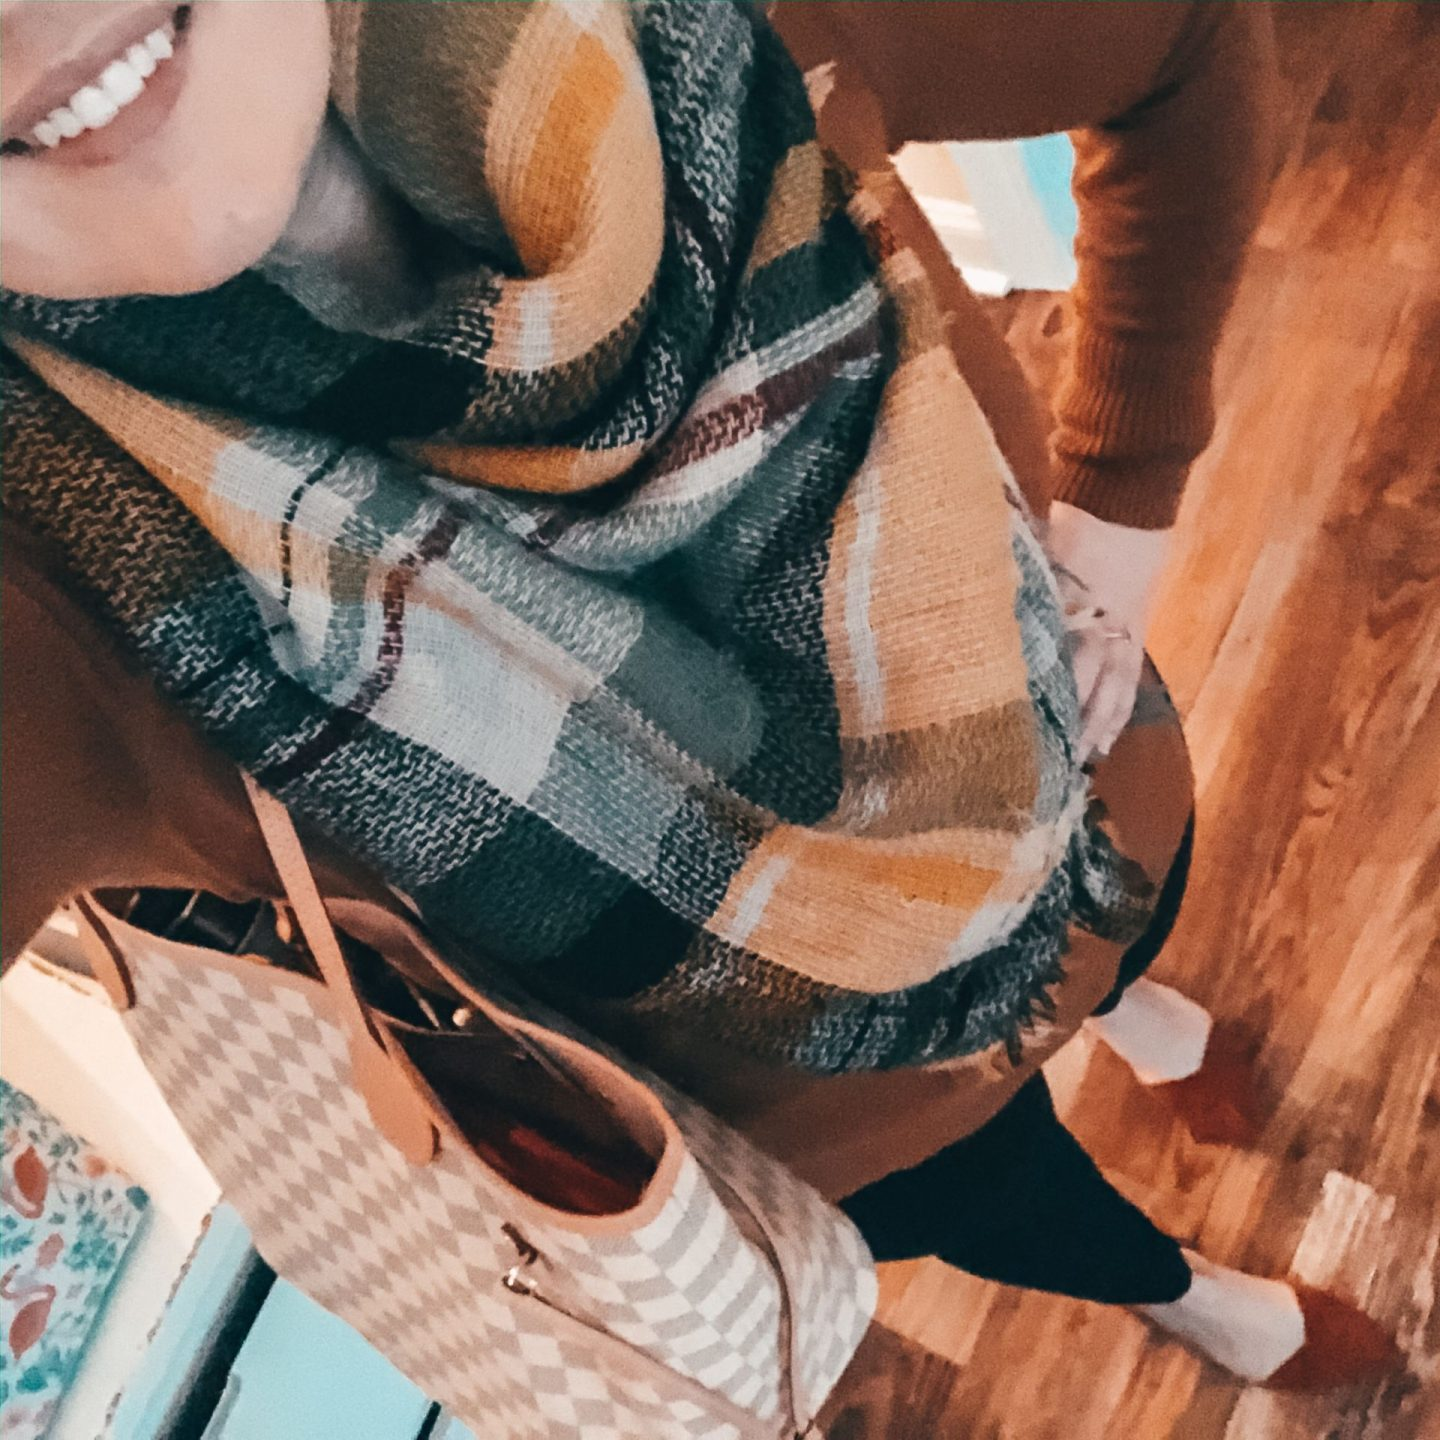 Popular NC blogger Rebecca Lately shares her weekly what I wore outfit round up for the last week of January. If you need winter inspiration, it is here!